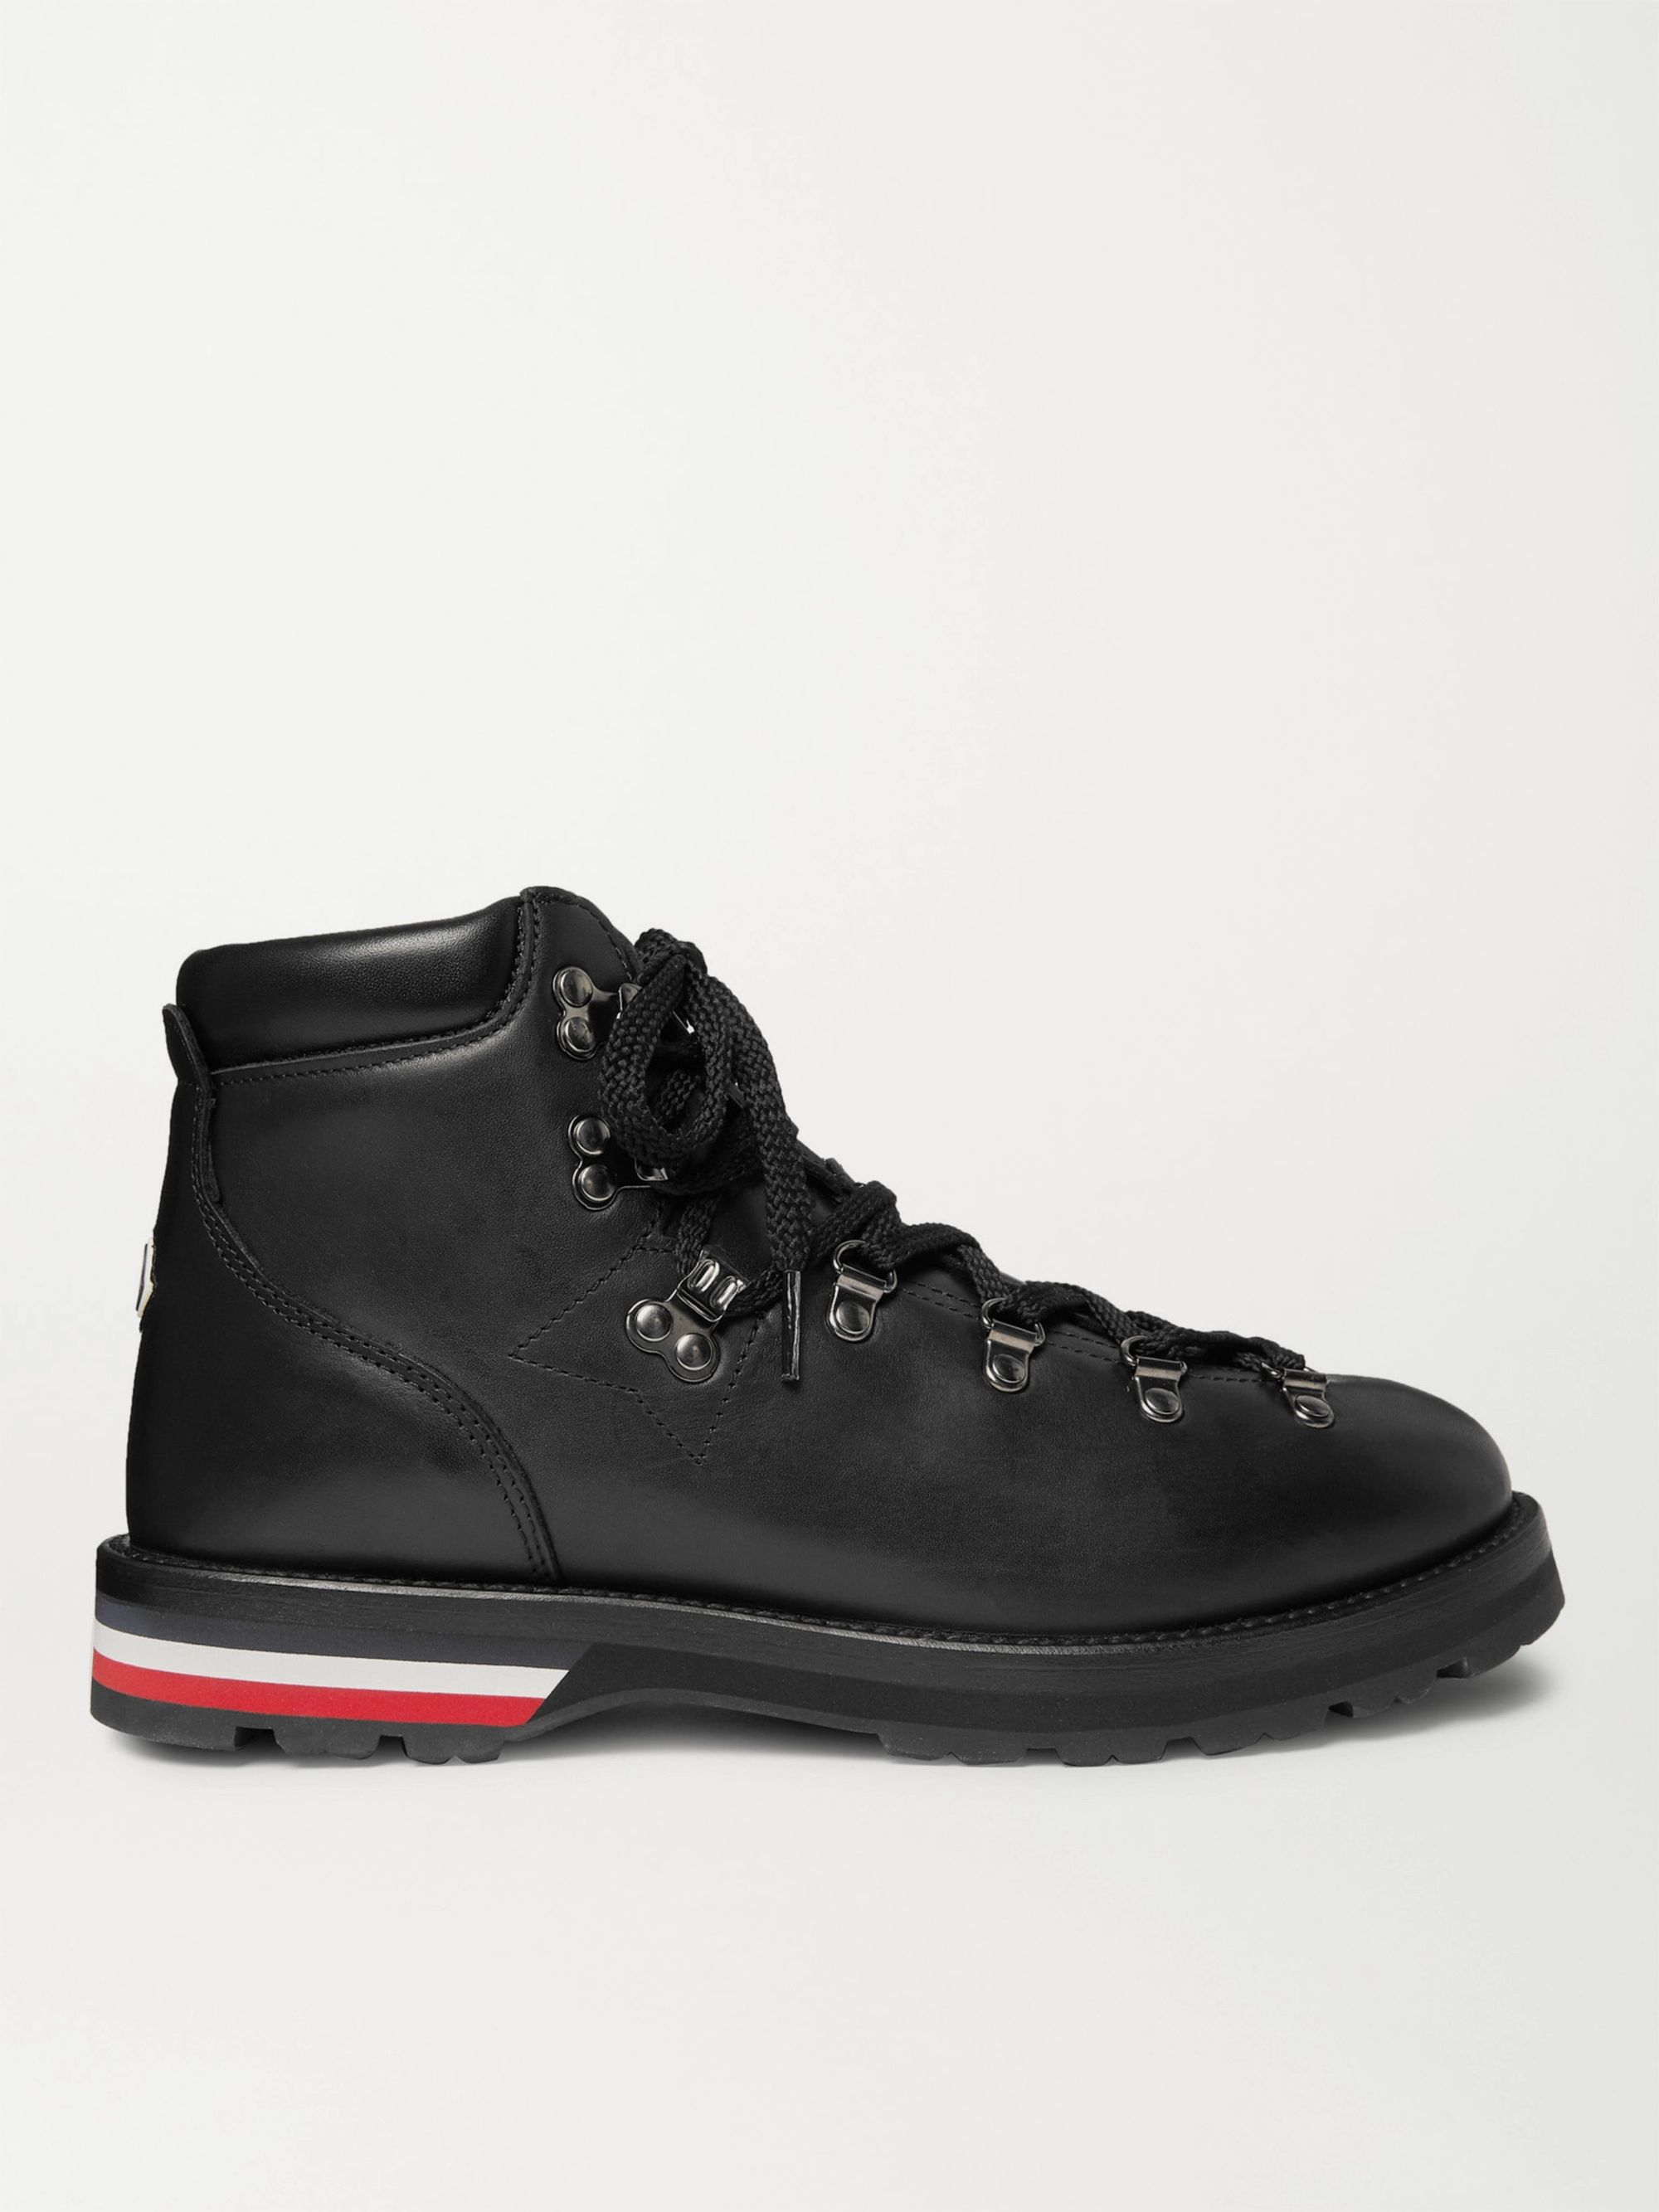 MONCLER Striped Full-Grain Leather Boots